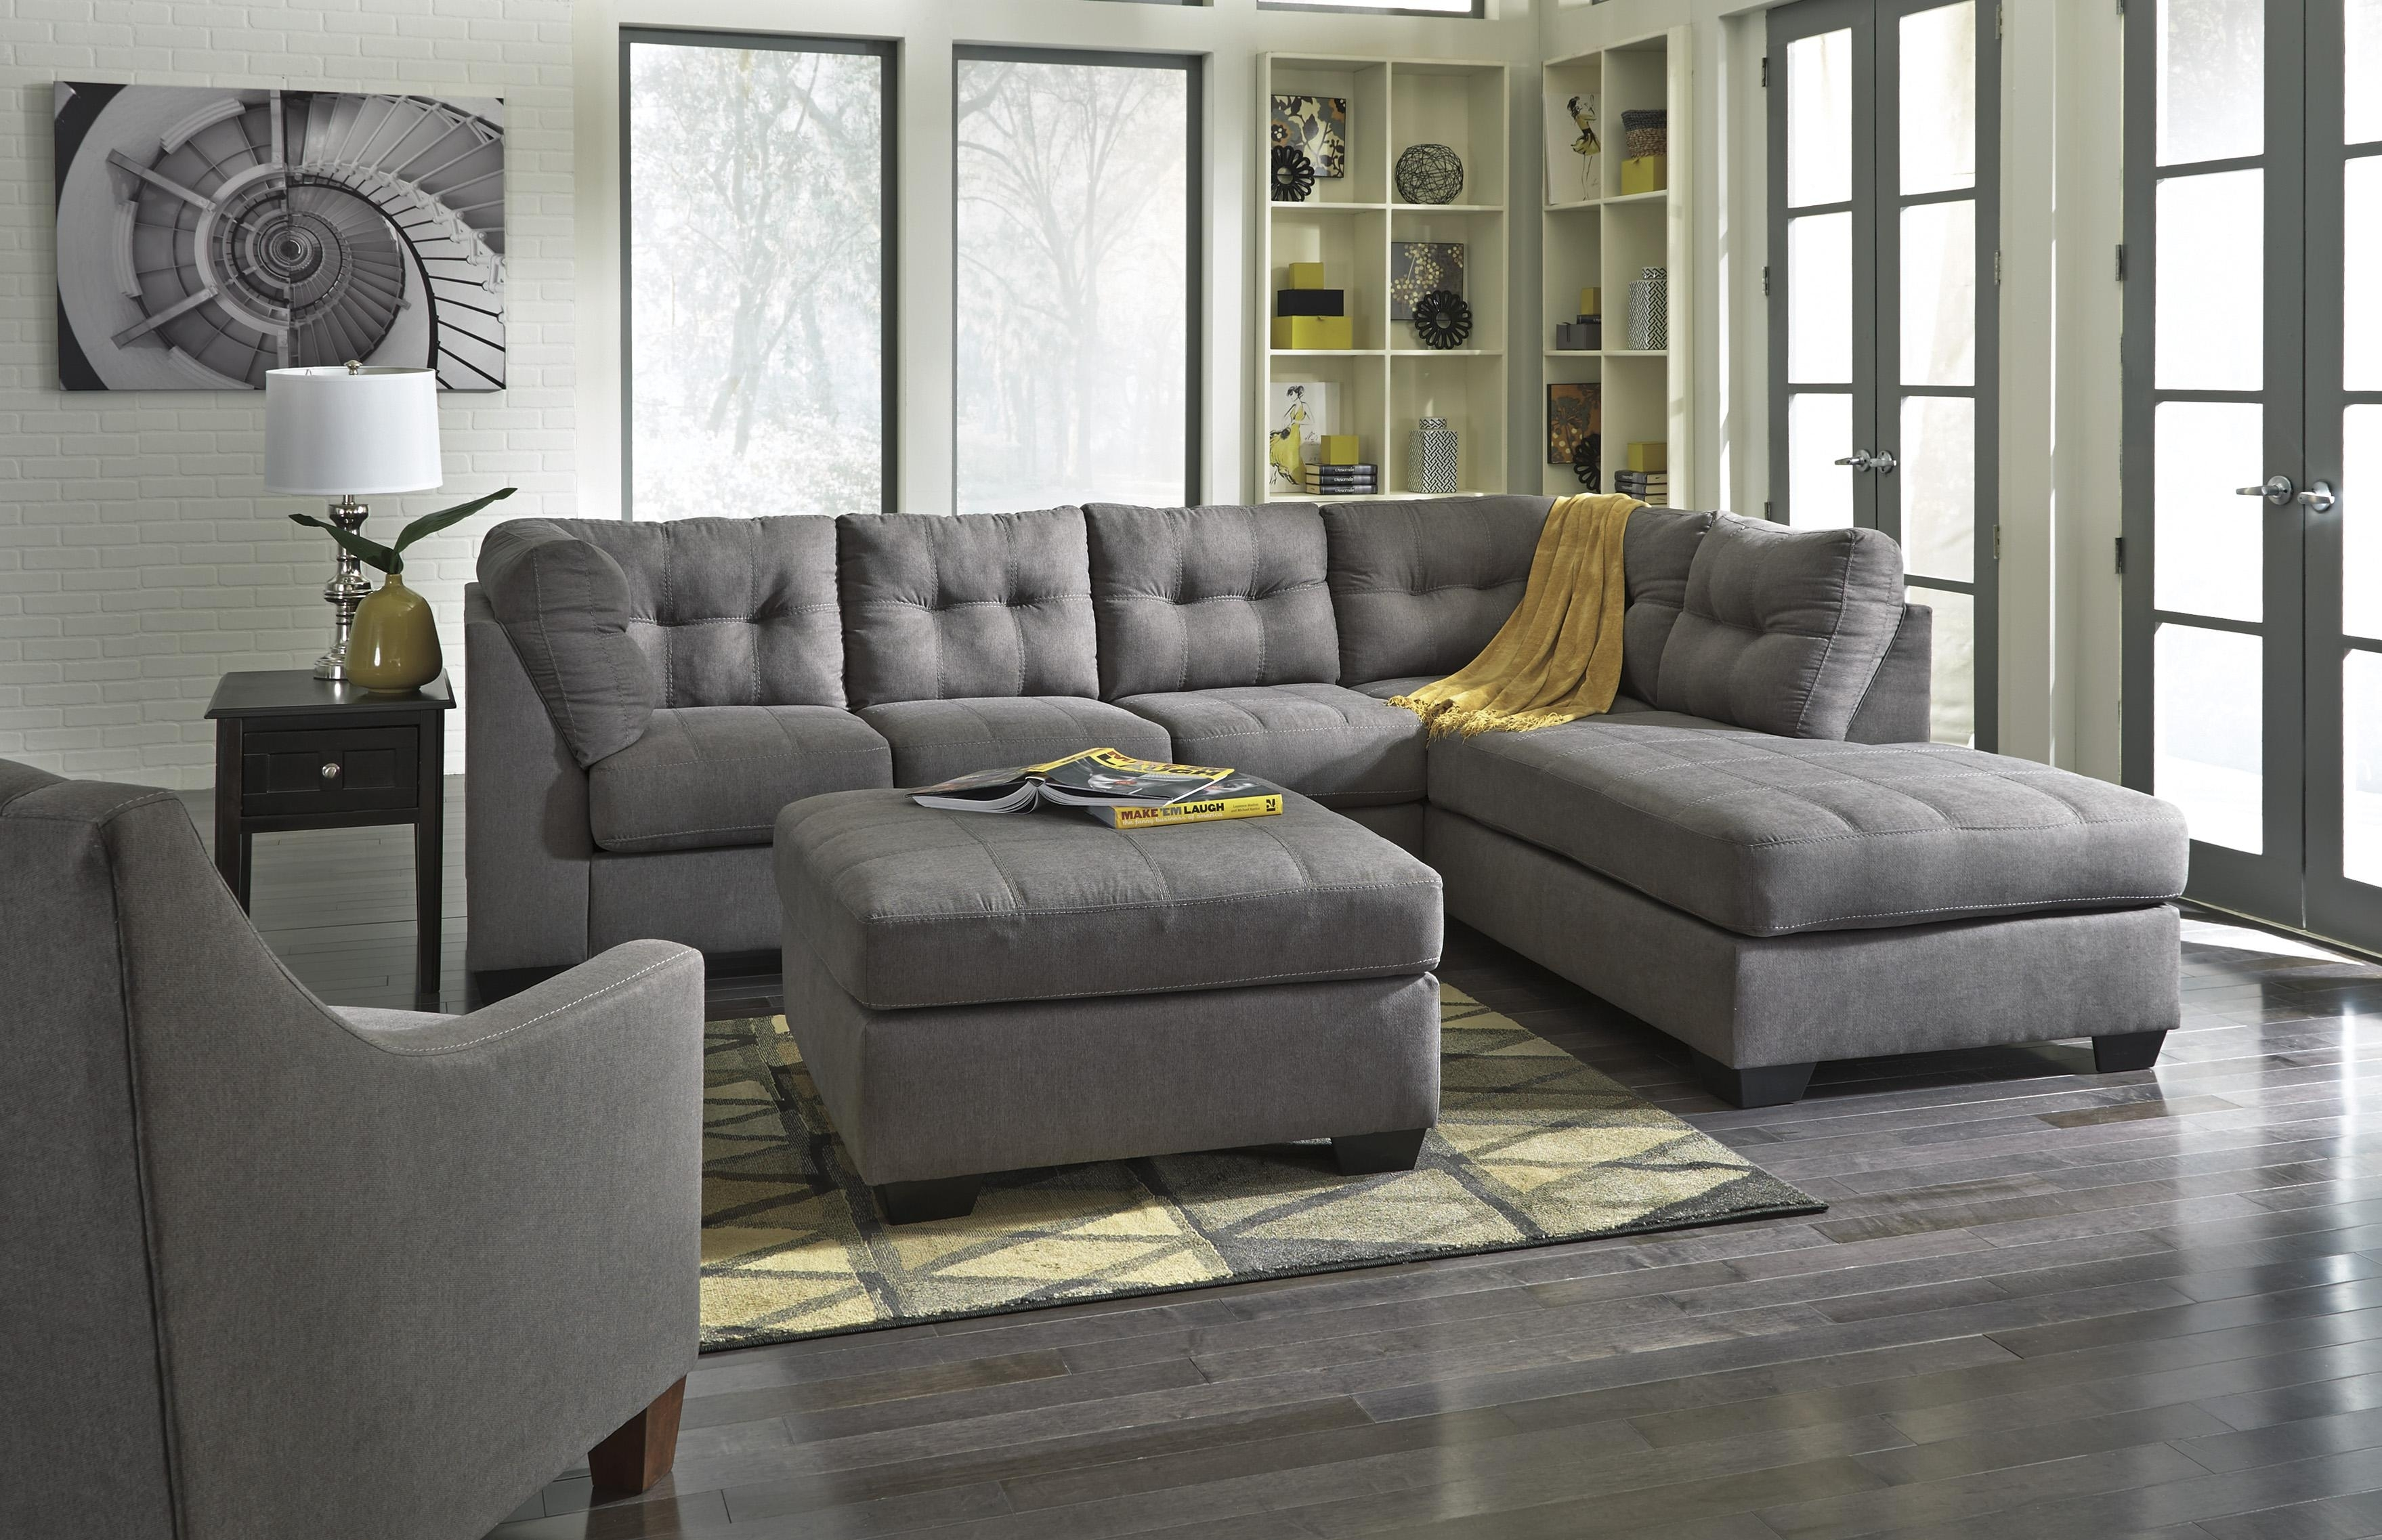 Alluring Lsf Chaisejackson Furniture Wolf In Piece Sectional intended for Kerri 2 Piece Sectionals With Laf Chaise (Image 2 of 30)